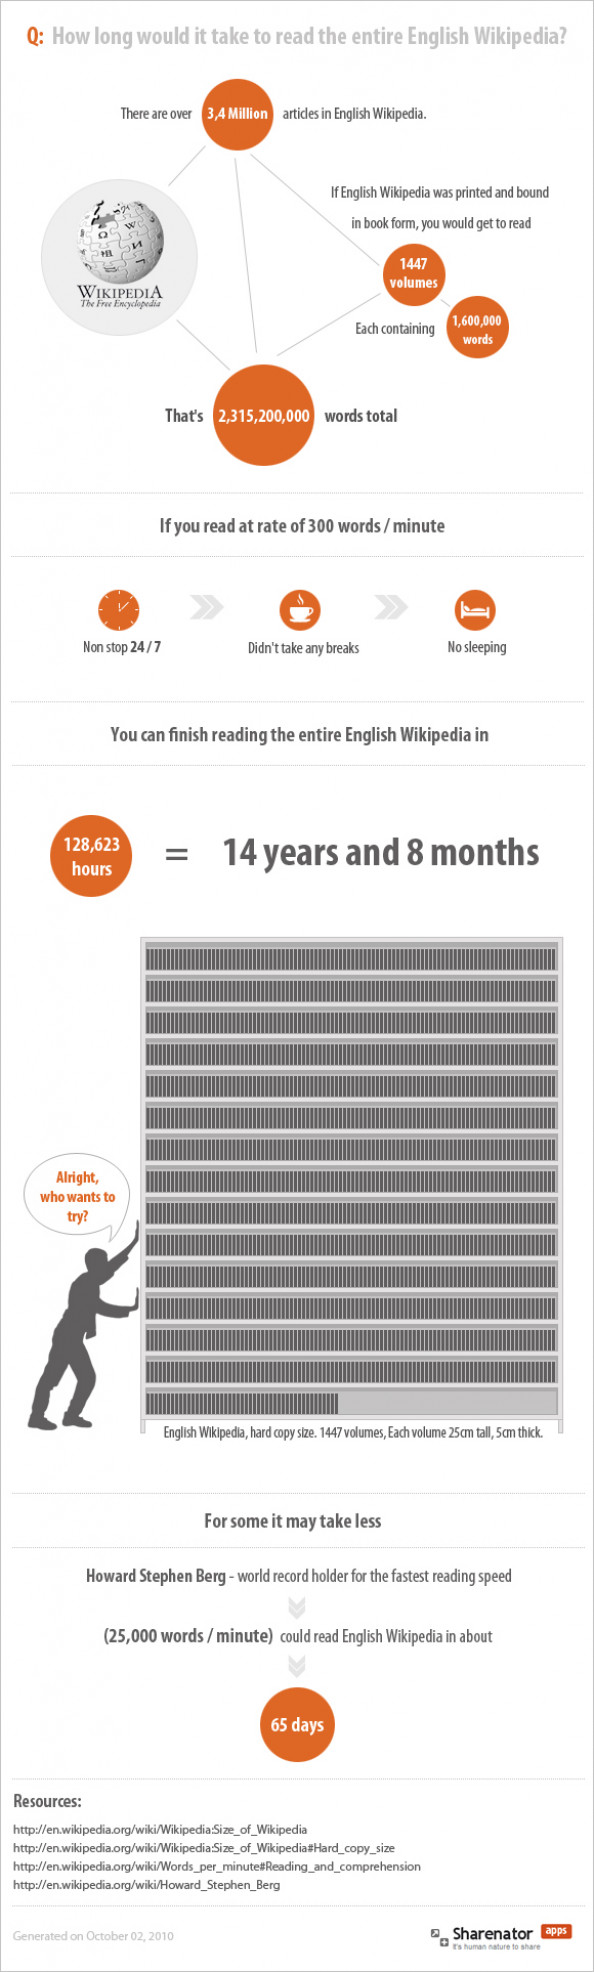 Reading the entire English Wikipedia Infographic